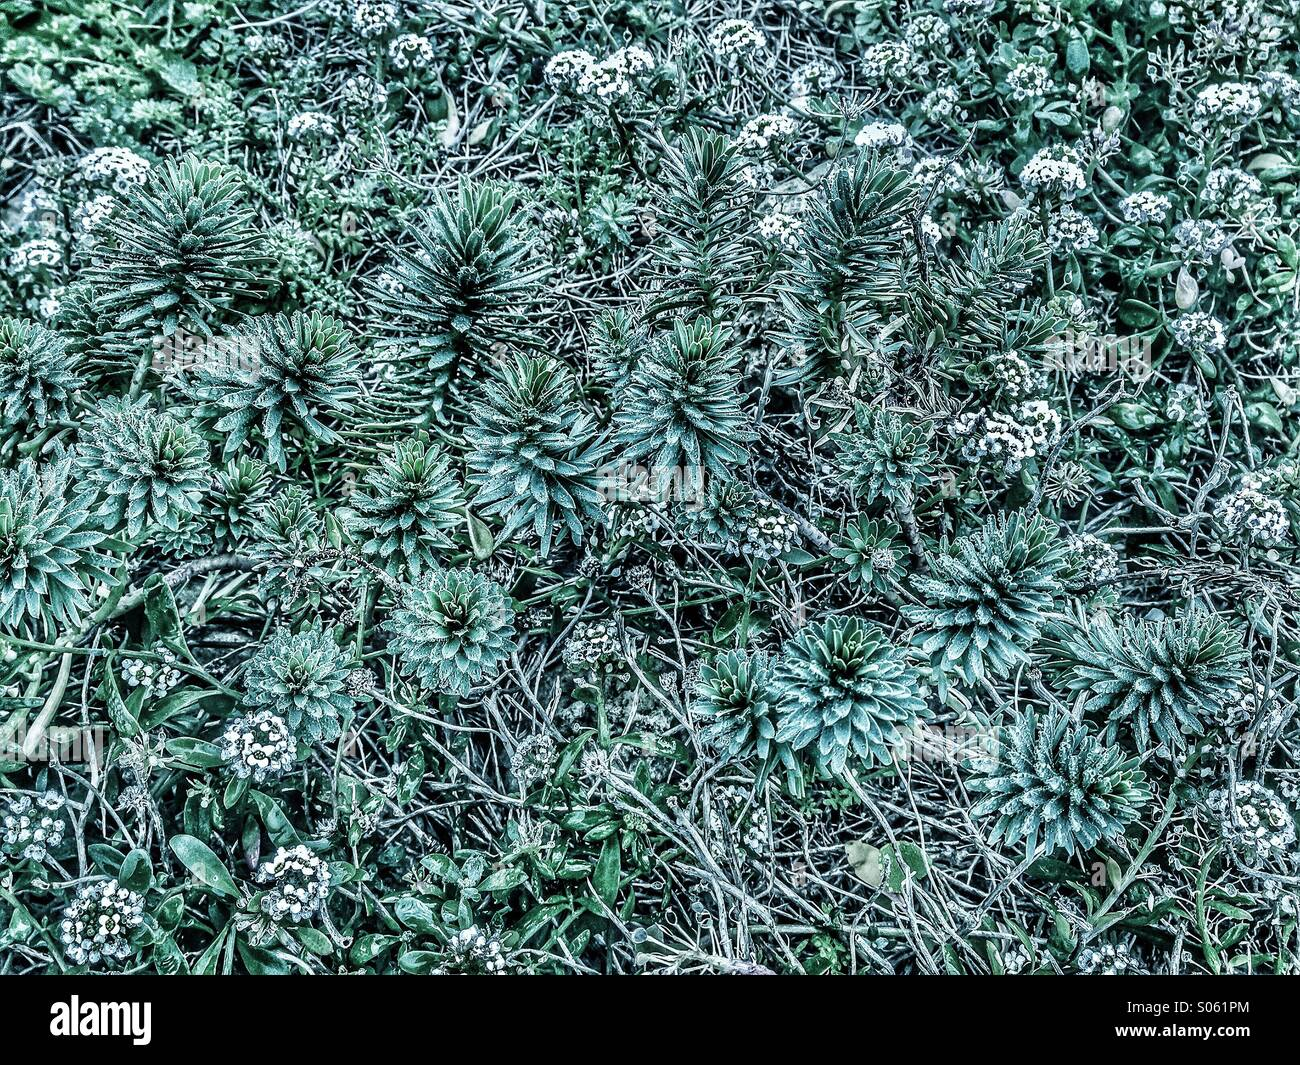 Succulent plants forming a dense bed on limestone - Stock Image